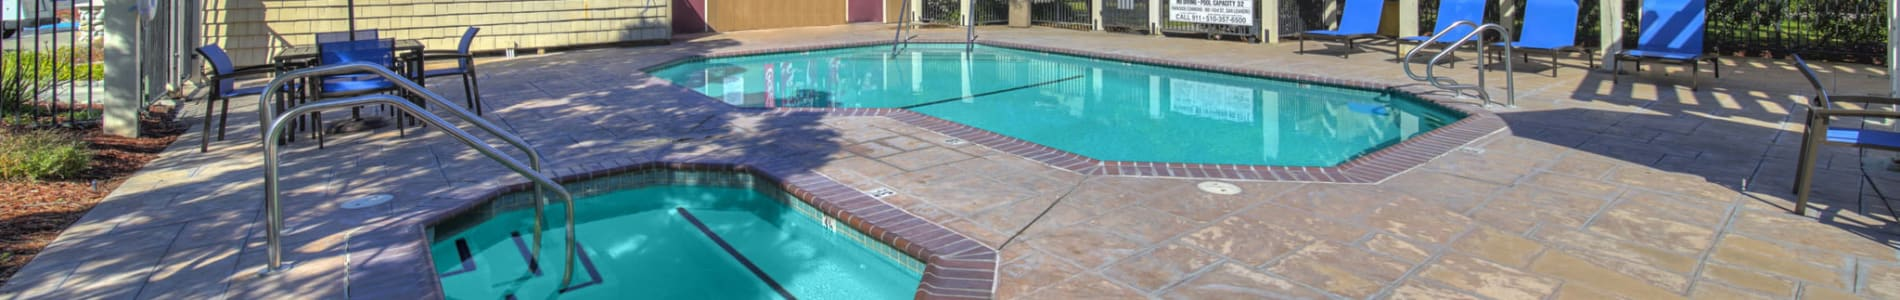 Accessibility statement at Parkside Commons Apartments in San Leandro, California